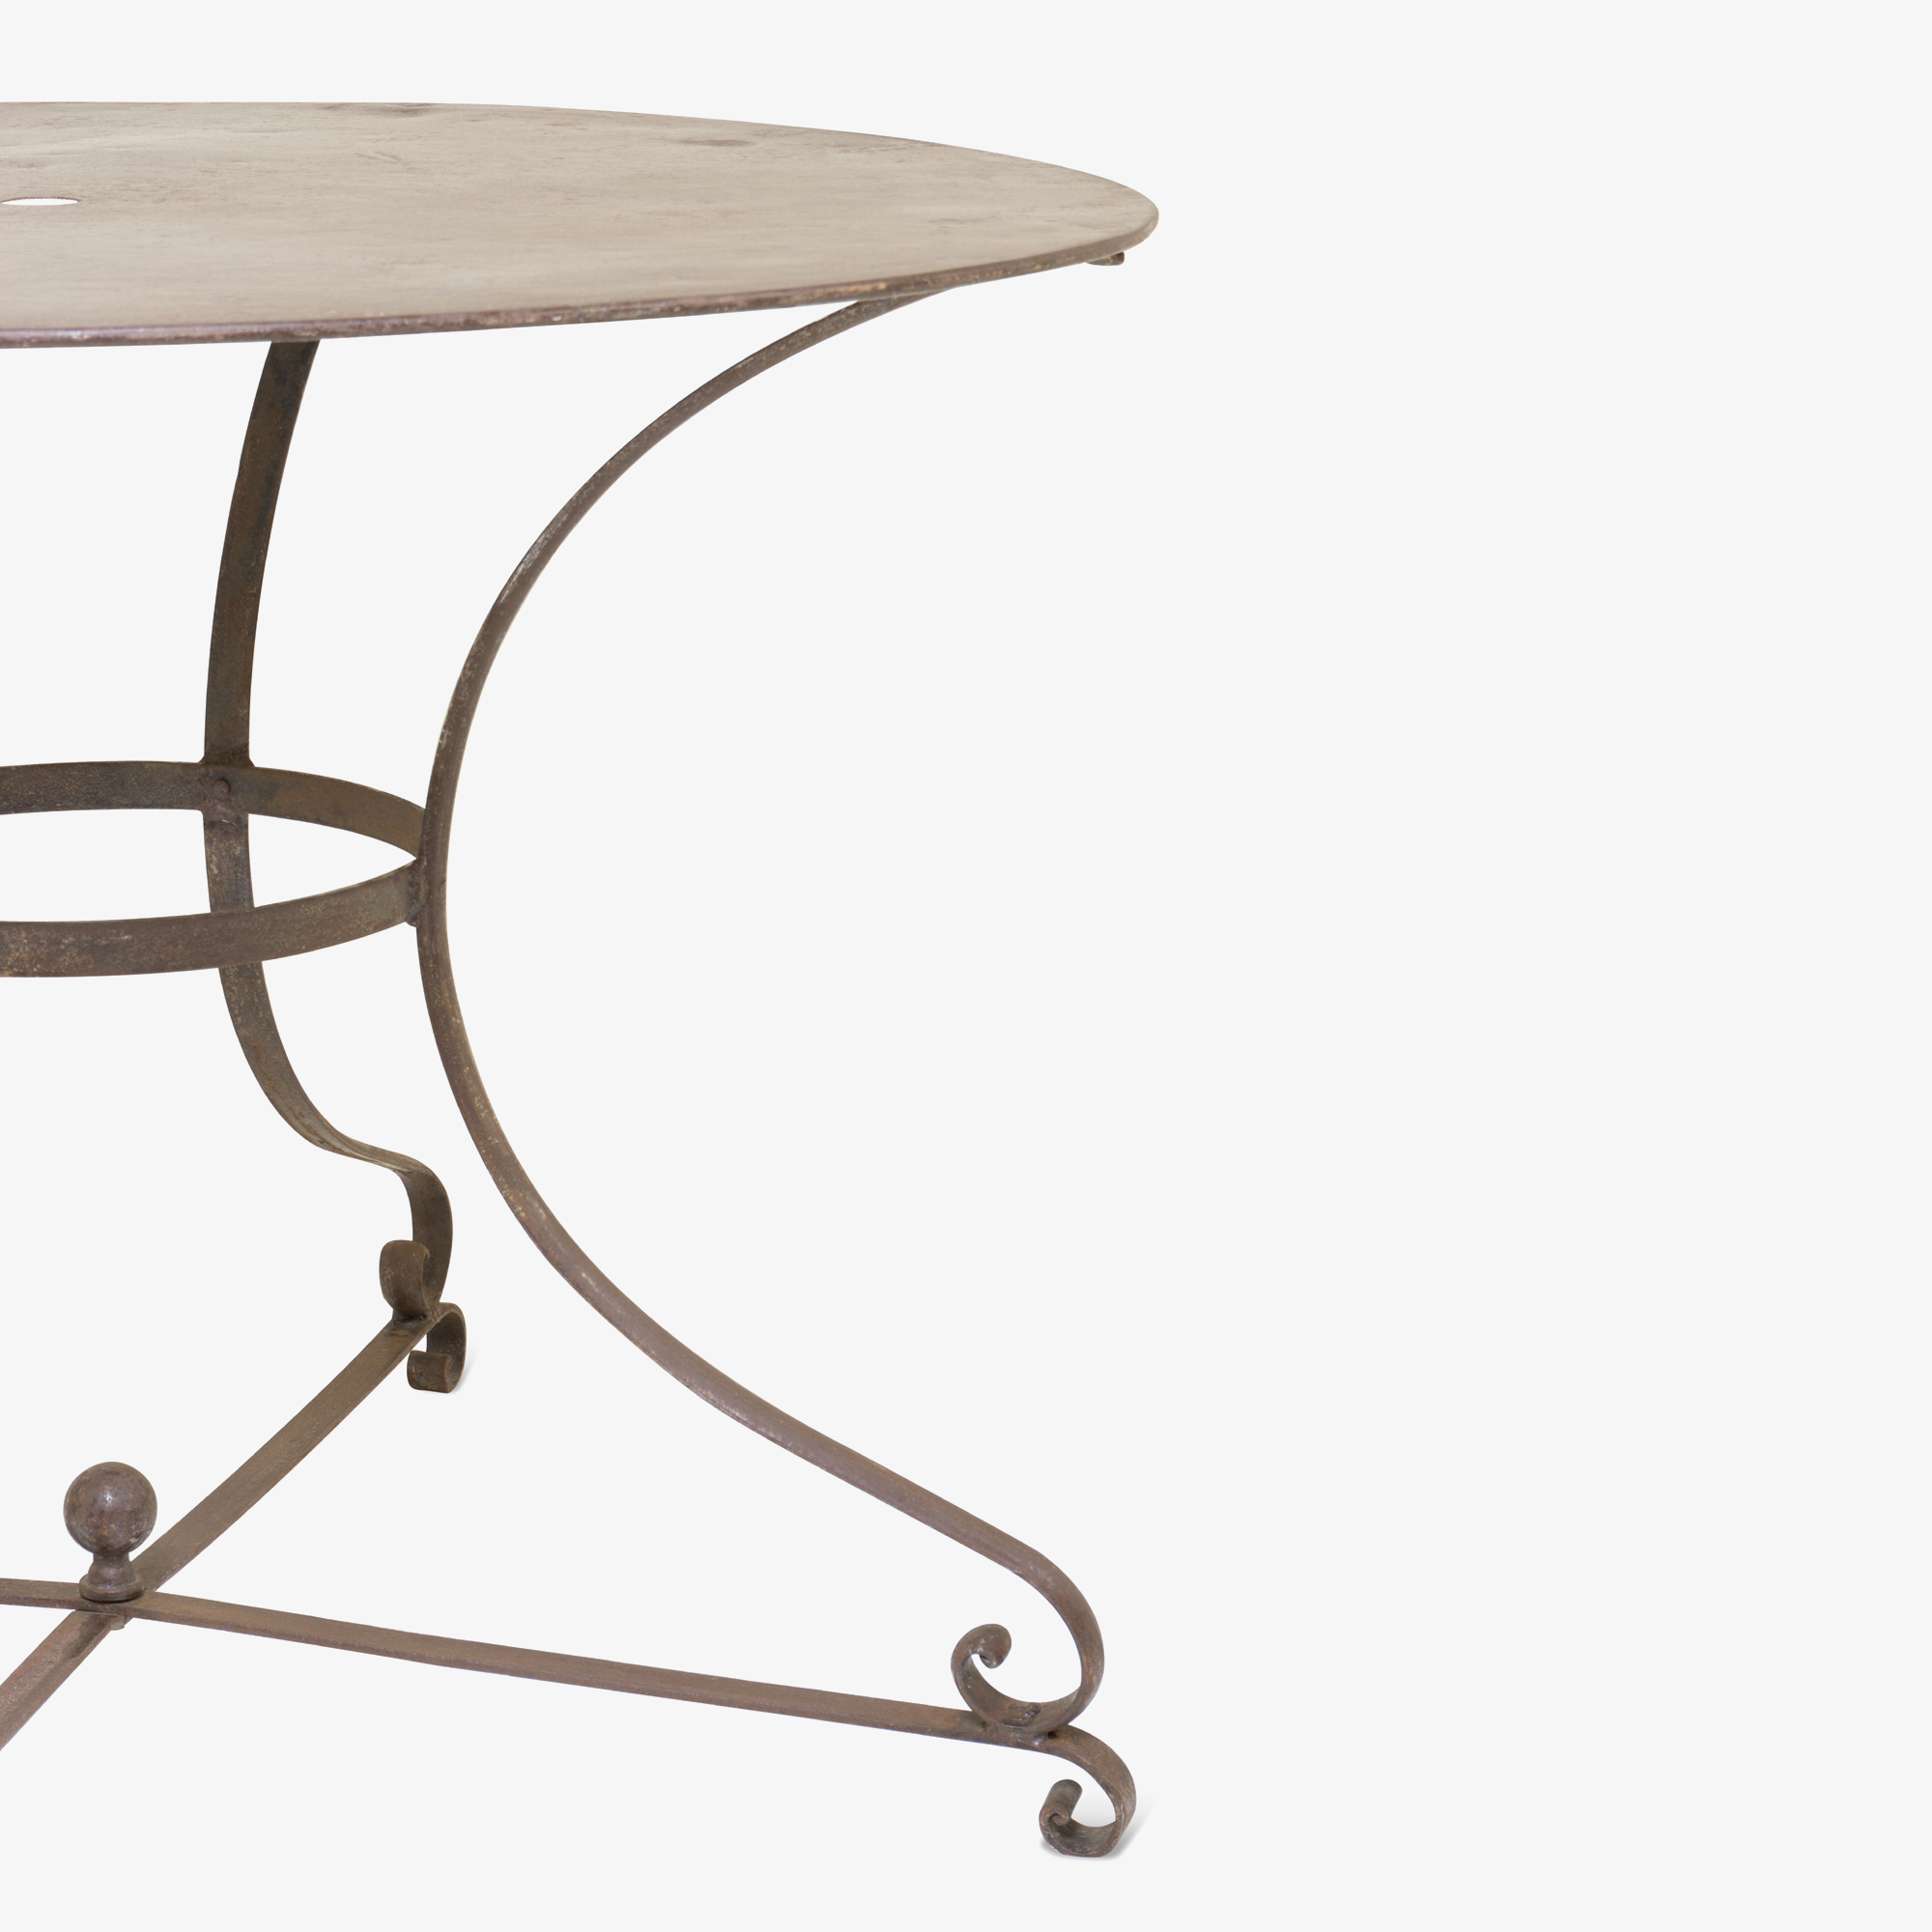 French Iron Gueridon Bistro Table3.png